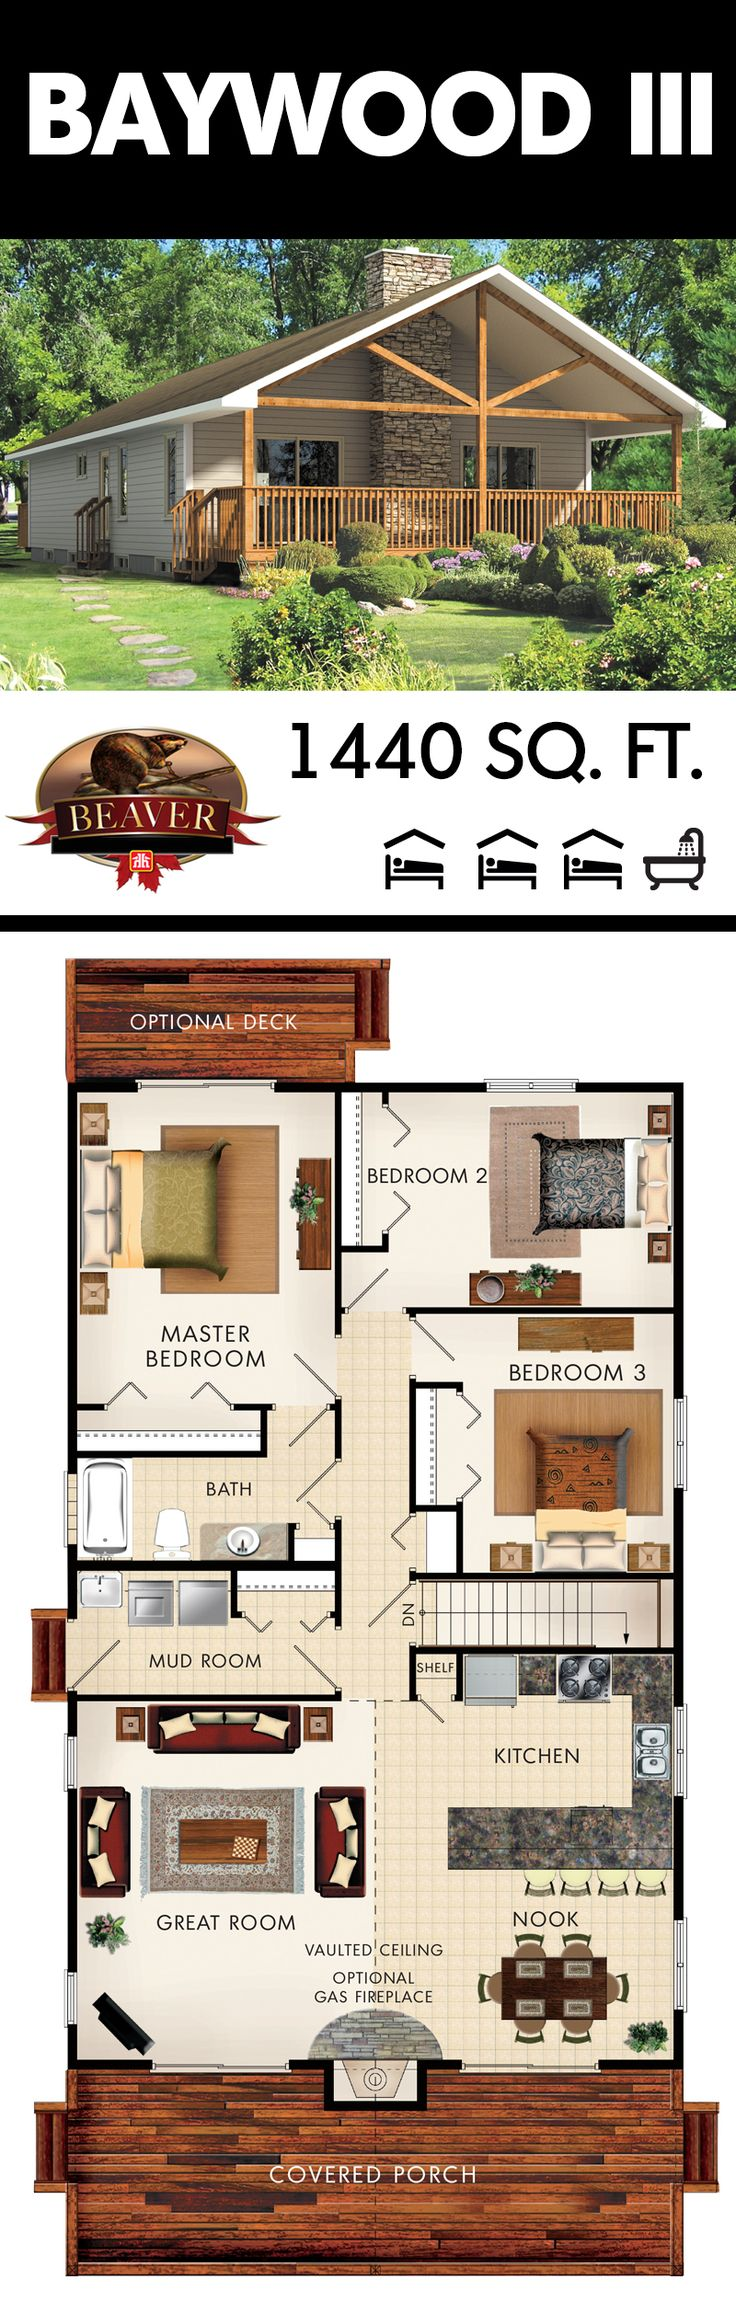 17 Best Ideas About Floor Plans On Pinterest House Floor